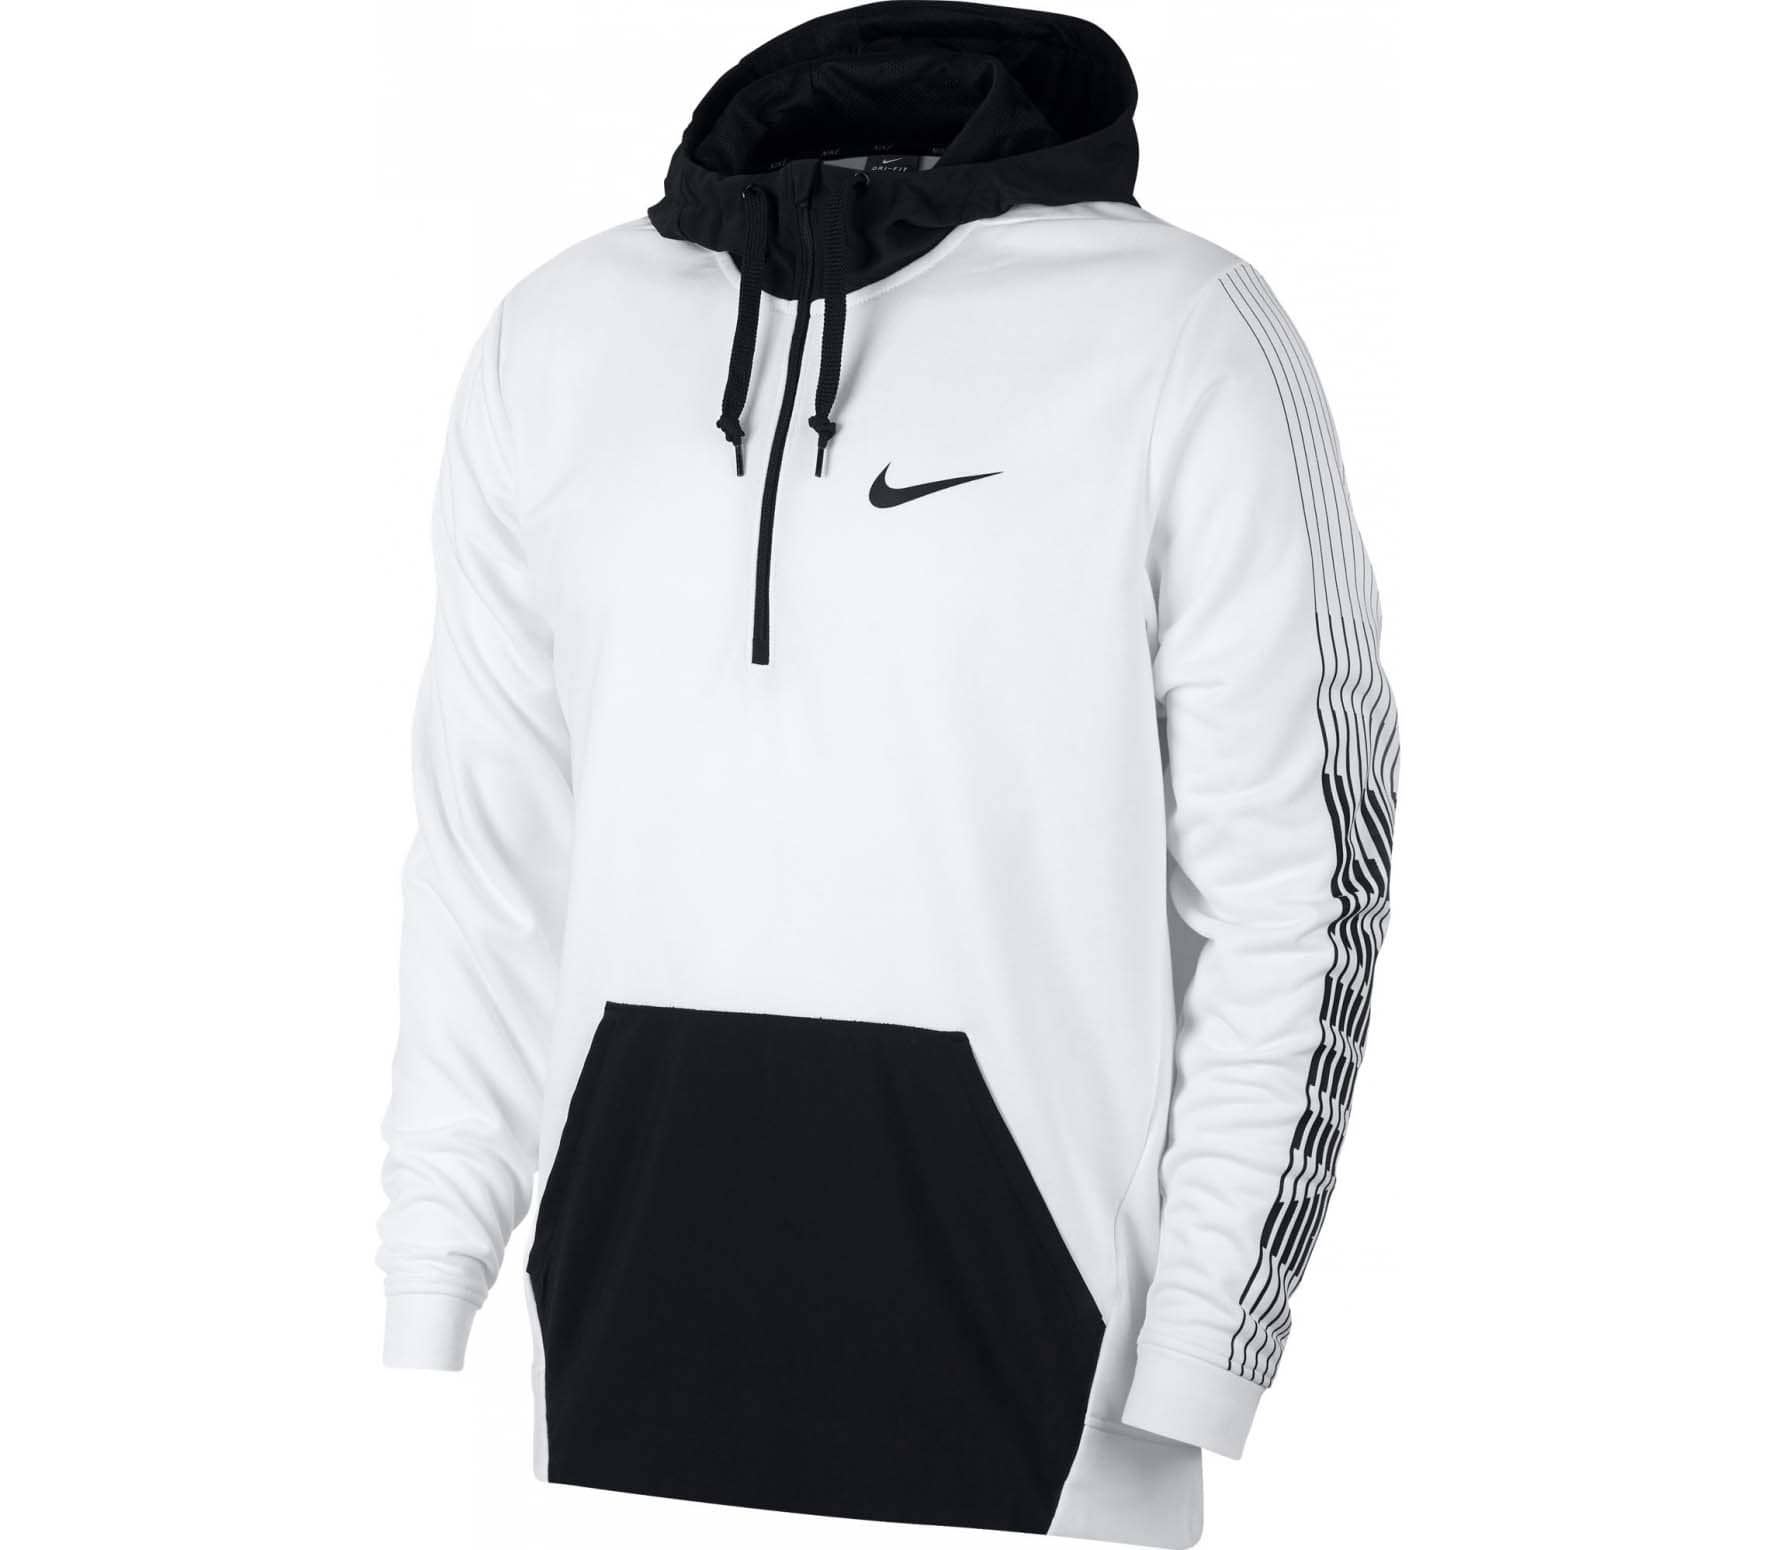 promo code aaac1 8a3eb Nike - Dri-FIT fleece men s training hoodie (white)